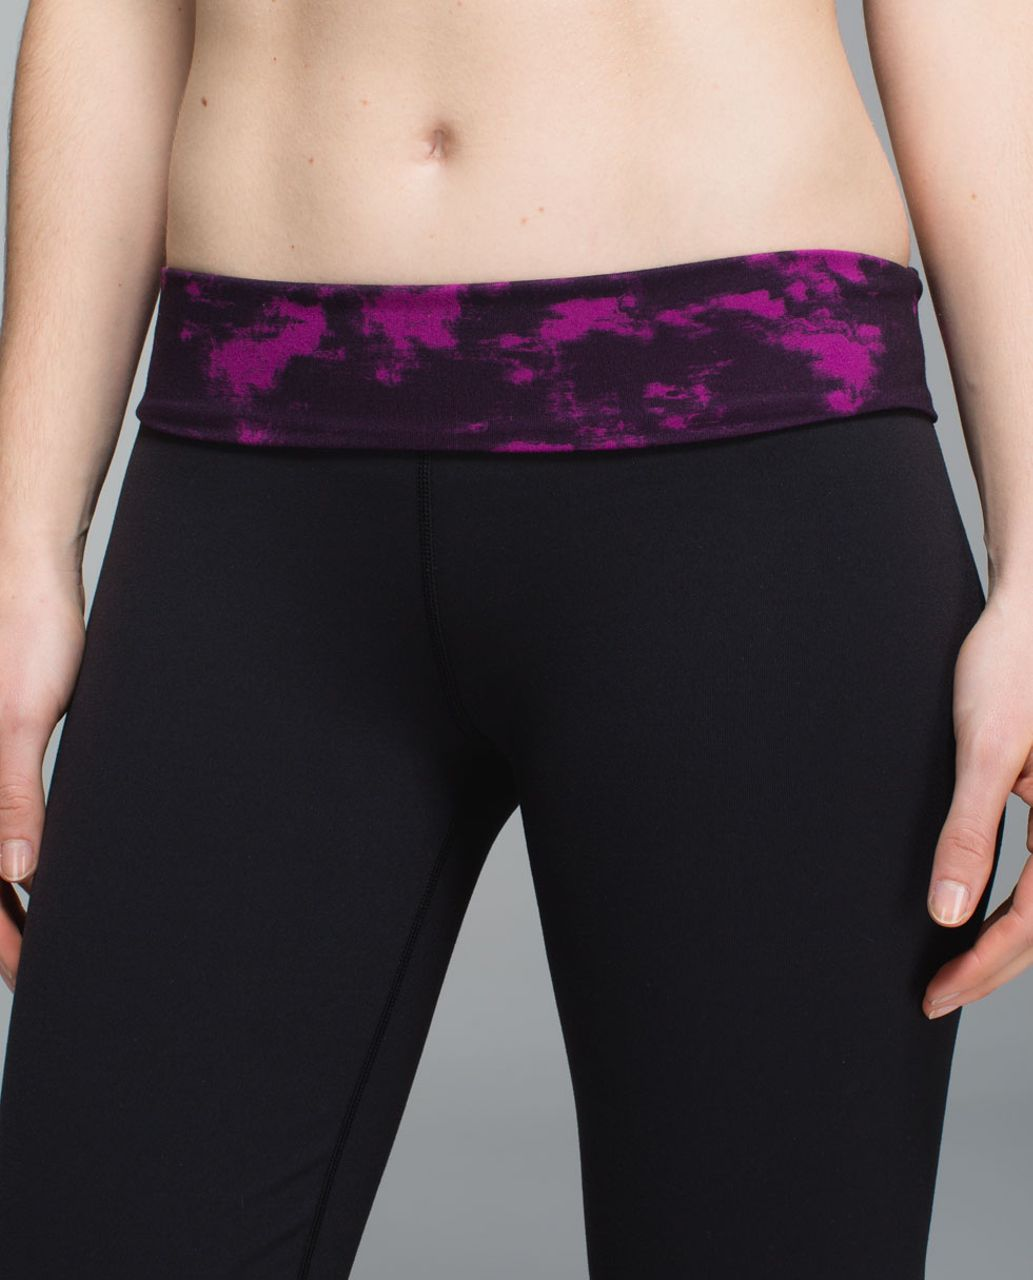 Lululemon Groove Pant II *Full-On Luon (Roll Down - Regular) - Black / Breezie Regal Plum Black